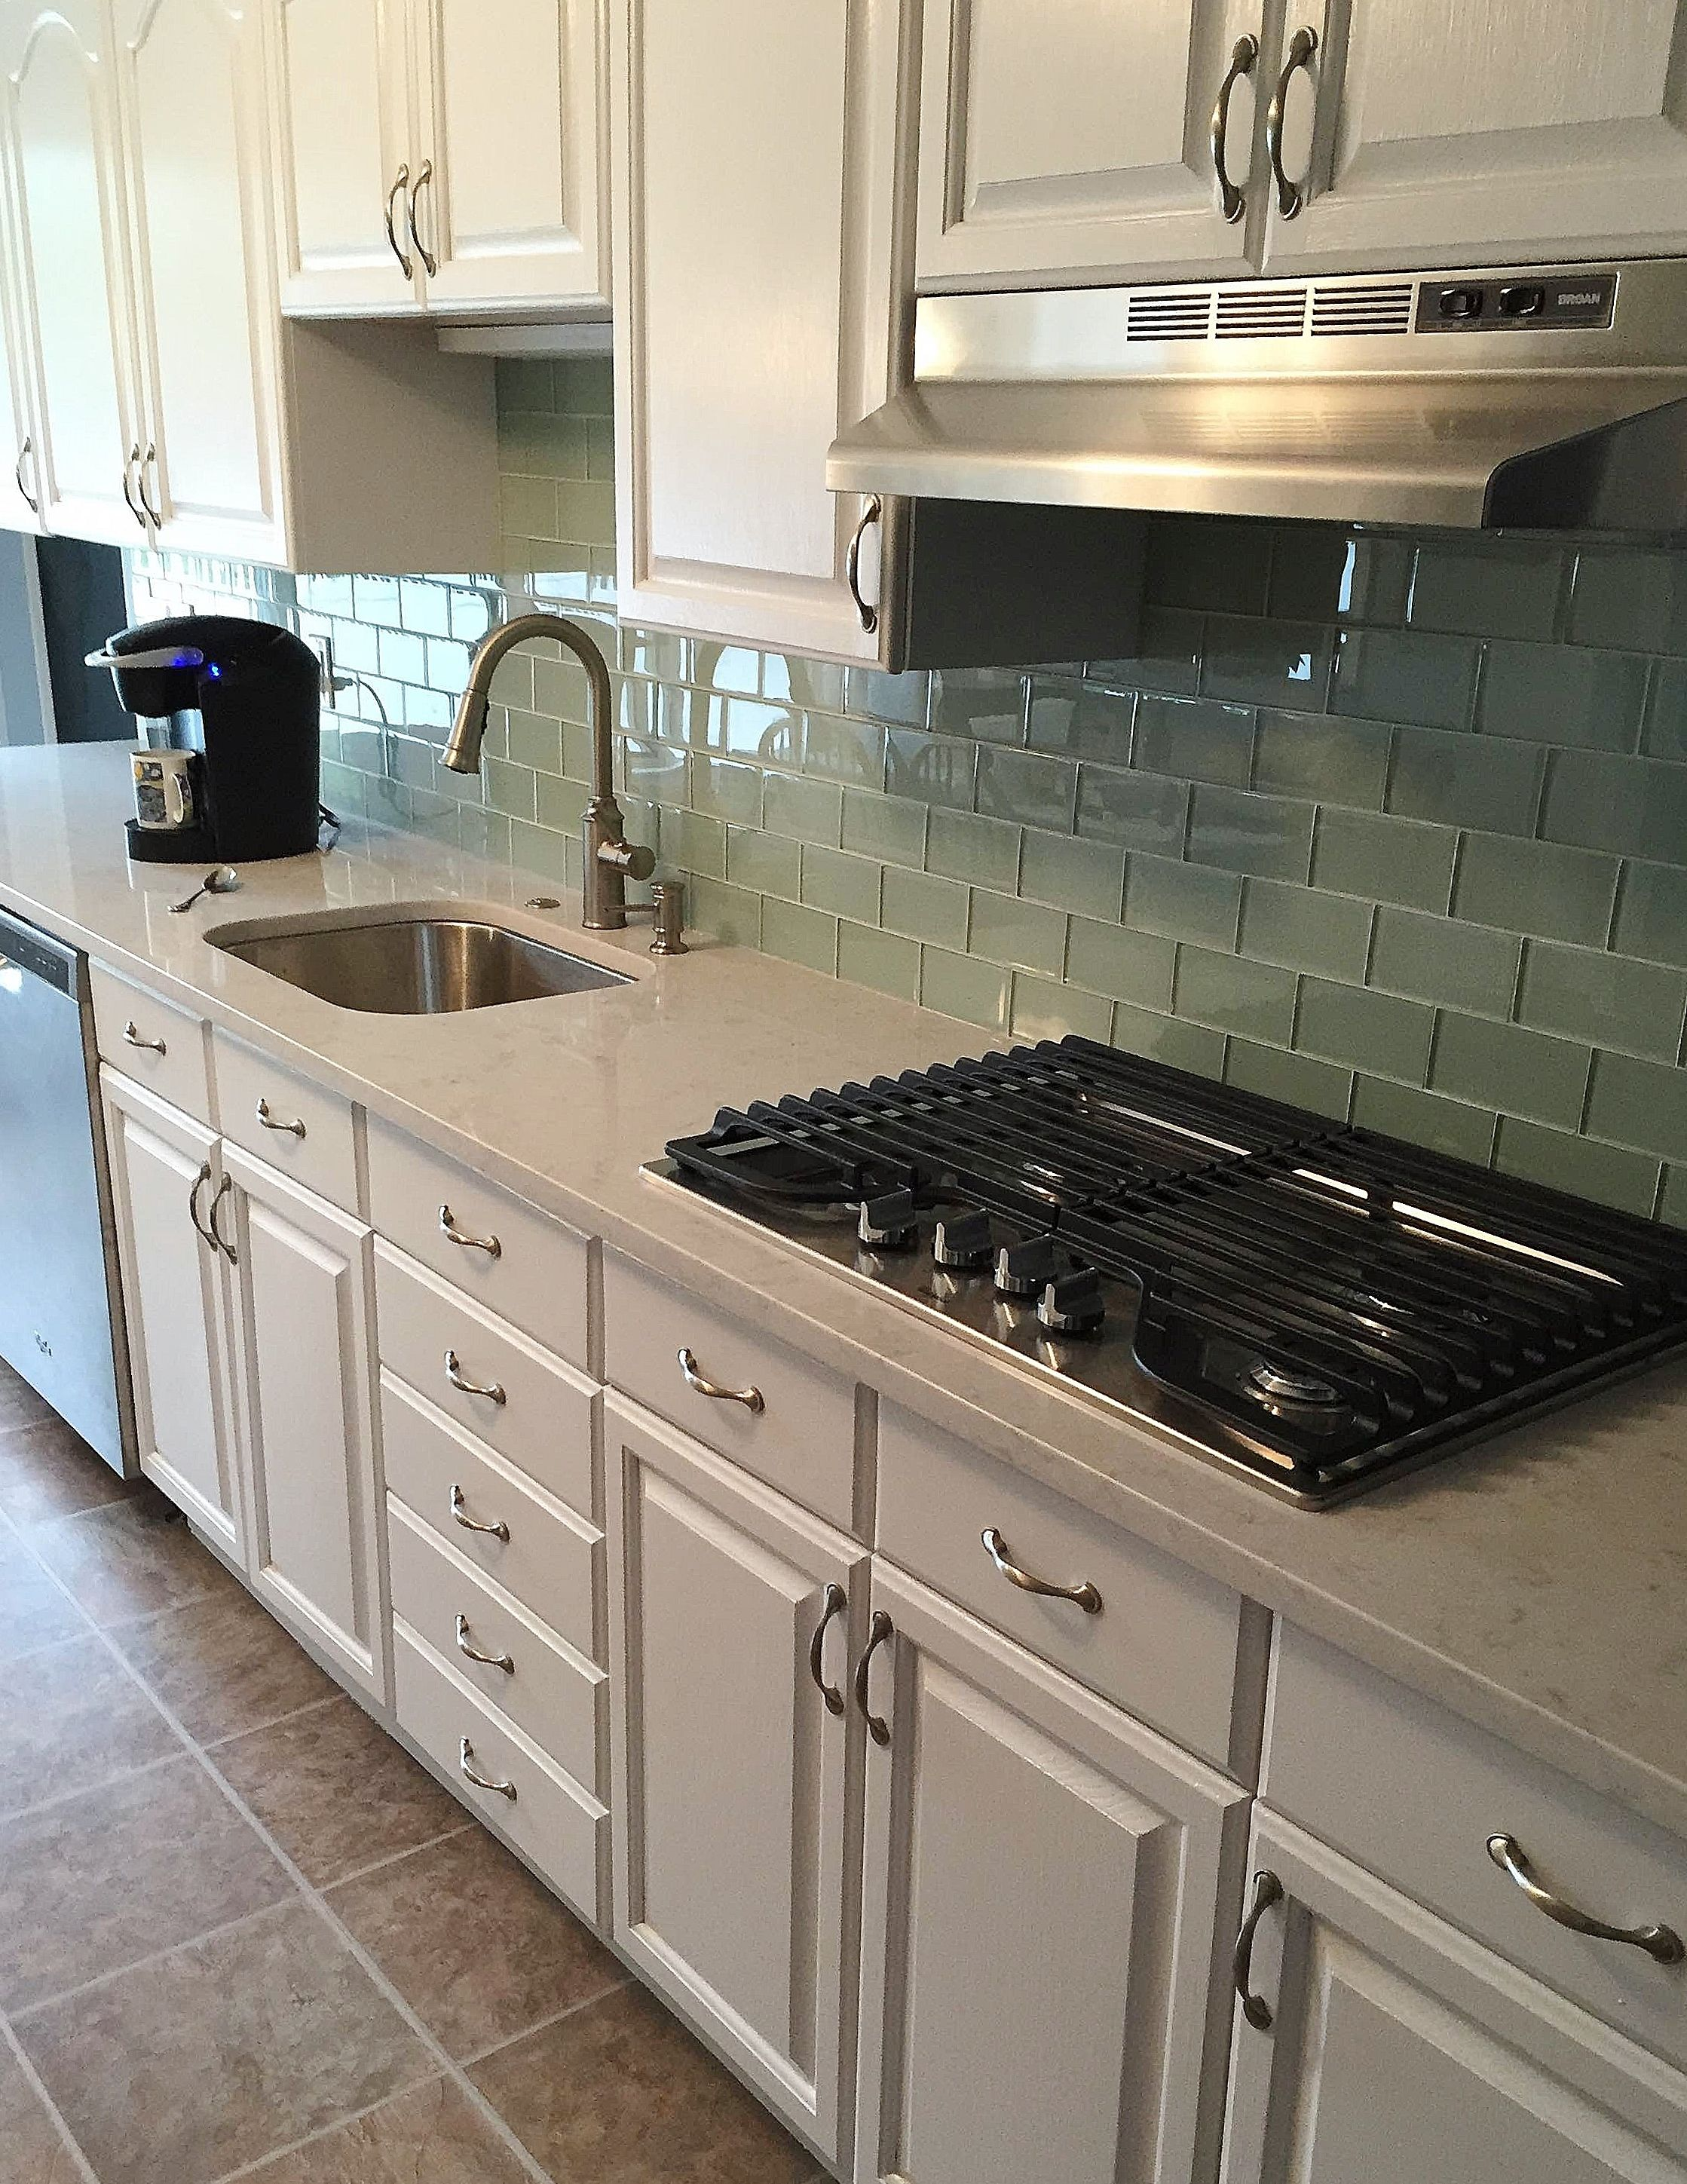 silestone lagoon quartz countertops with a soft blue glass tile backsplash kitchen by stoneshop from